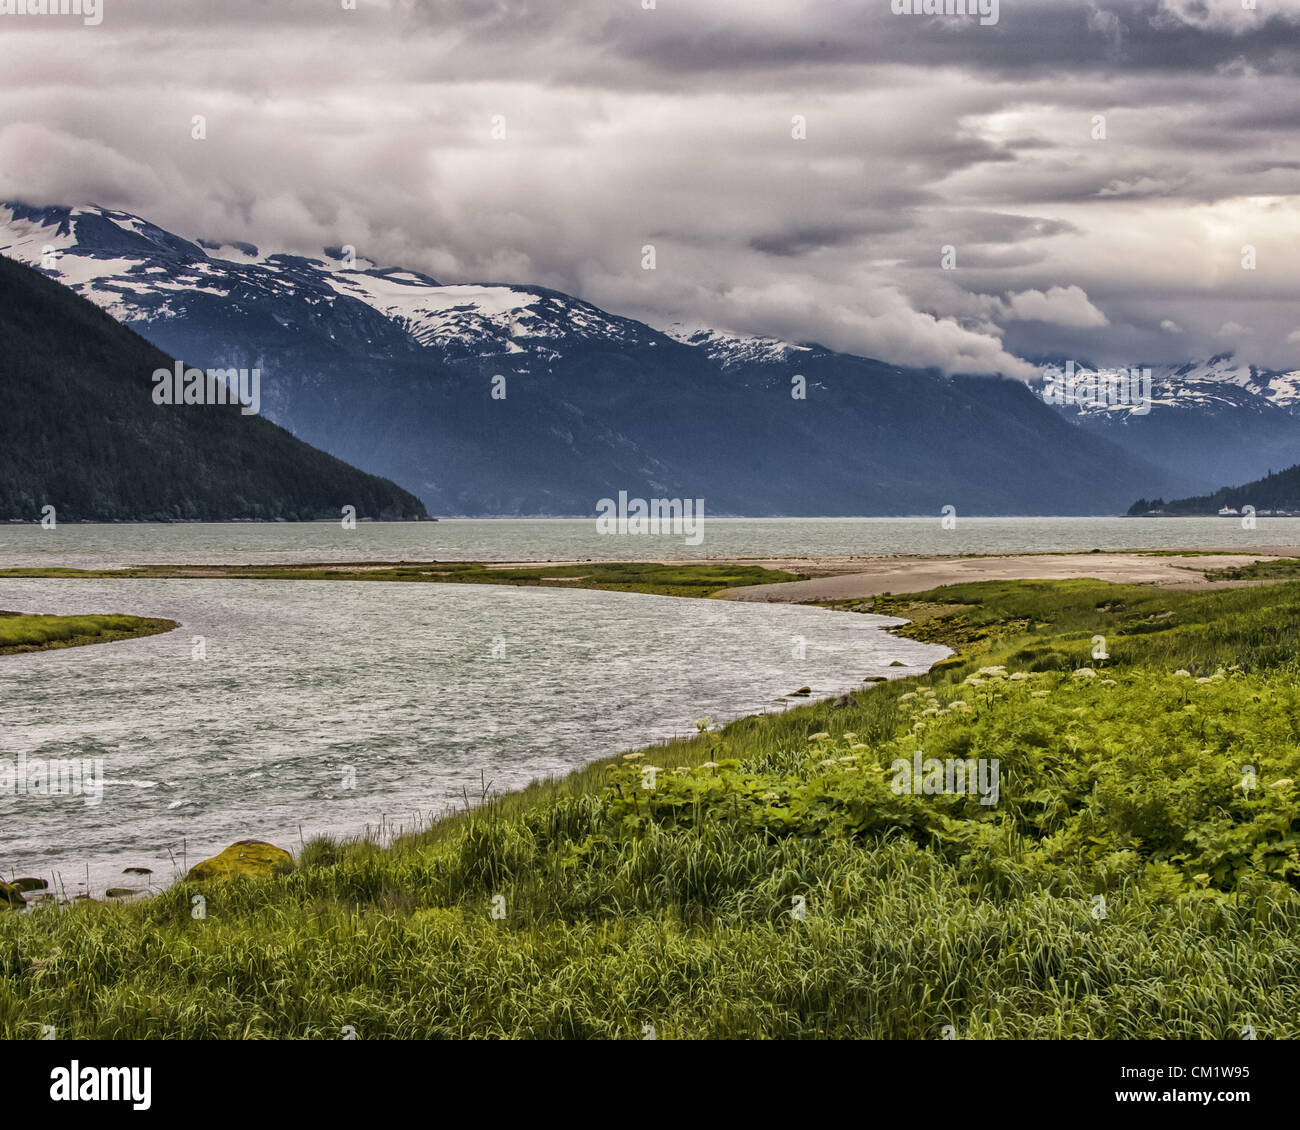 July 4, 2012 - Haines, Alaska, US - Wildflowers grow along the banks of the mouth of the Chilkoot River, looking - Stock Image